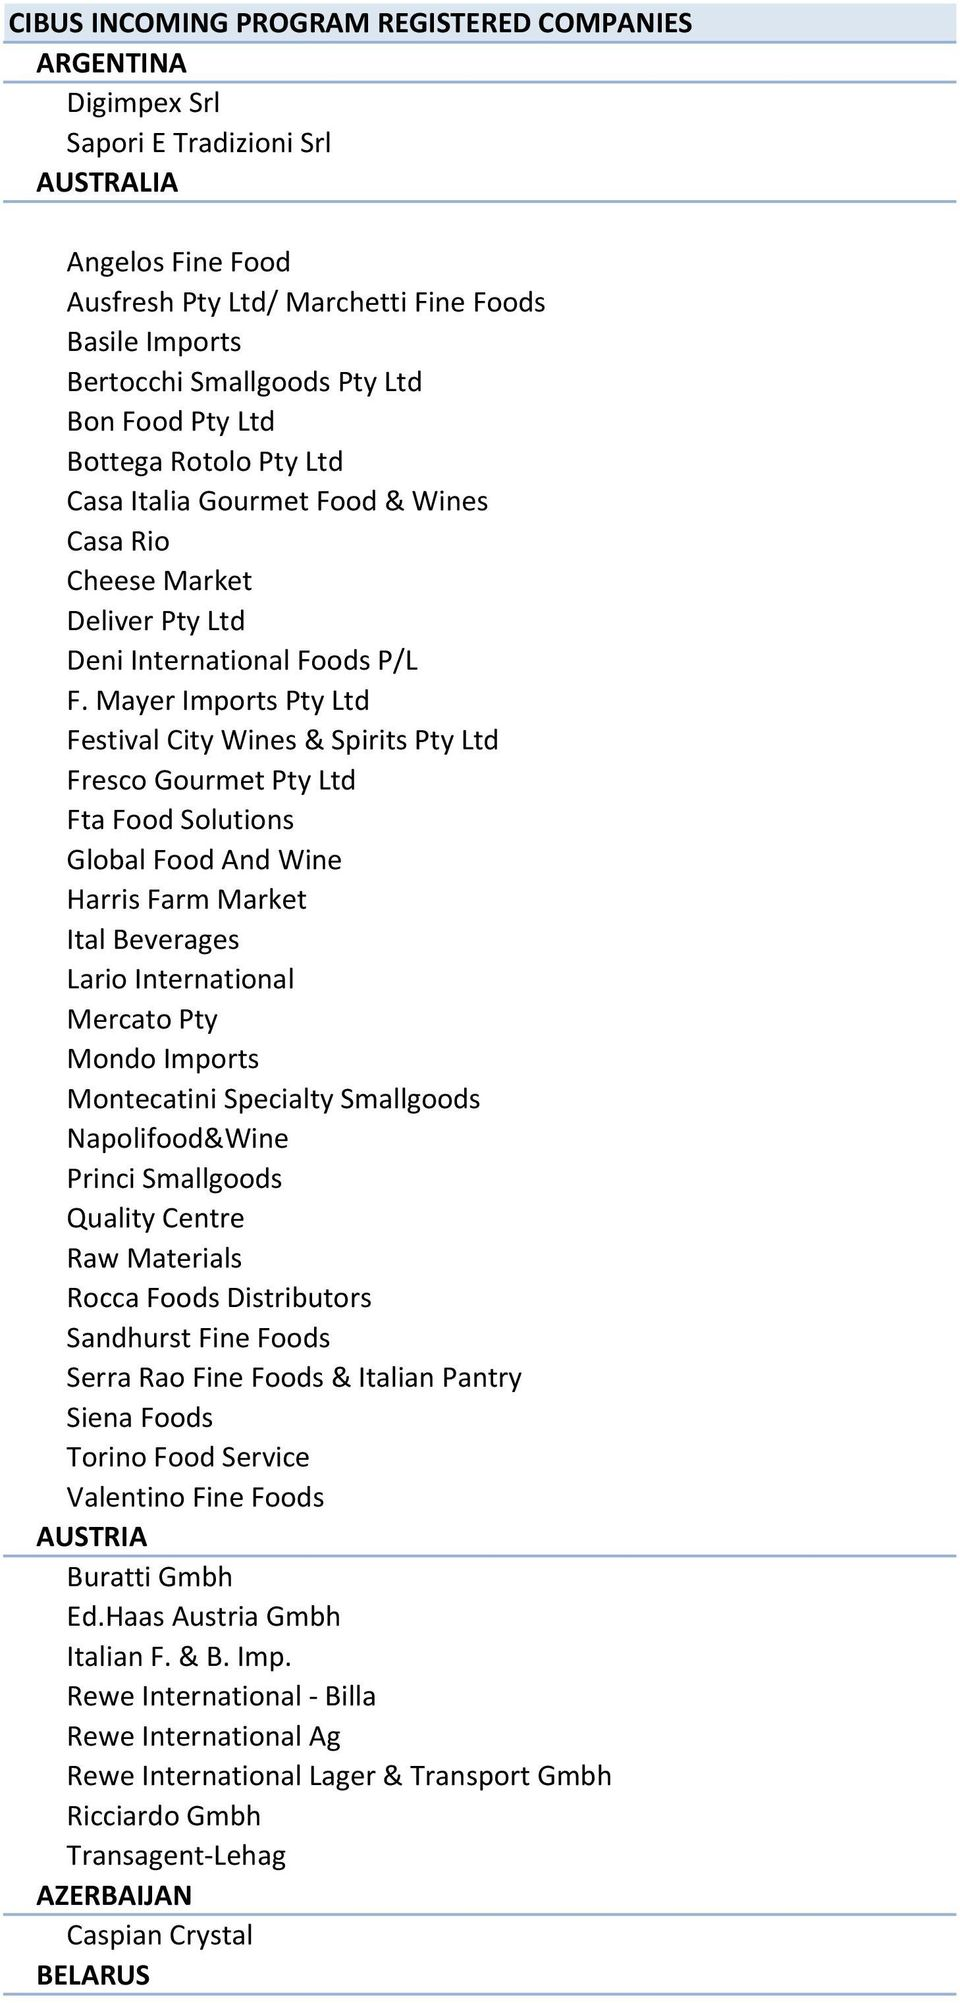 Mayer Imports Pty Ltd Festival City Wines & Spirits Pty Ltd Fresco Gourmet Pty Ltd Fta Food Solutions Global Food And Wine Harris Farm Market Ital Beverages Lario International Mercato Pty Mondo